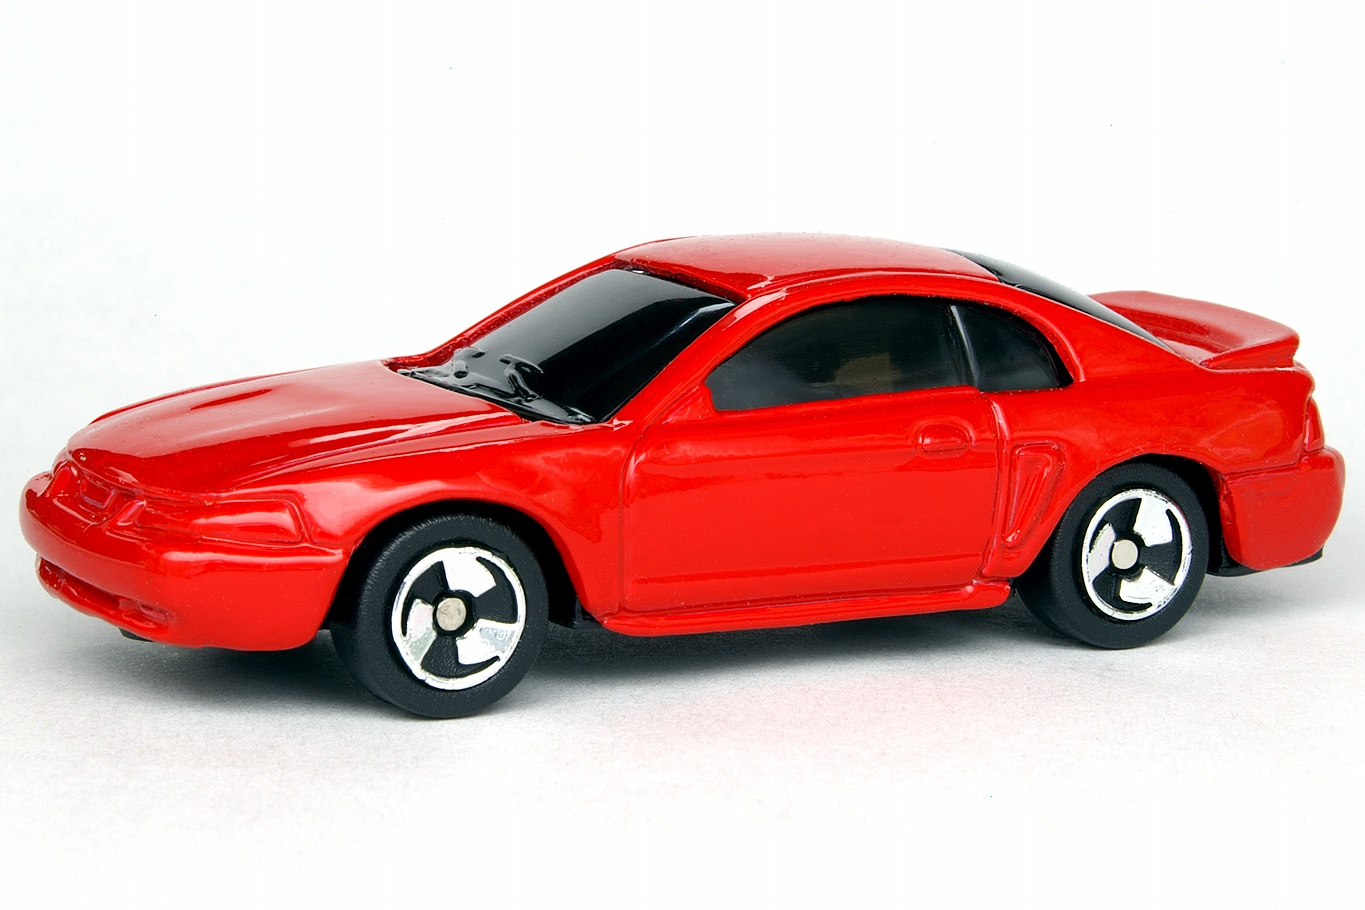 1999 Ford Mustang | Maisto Diecast Wiki | FANDOM powered ...